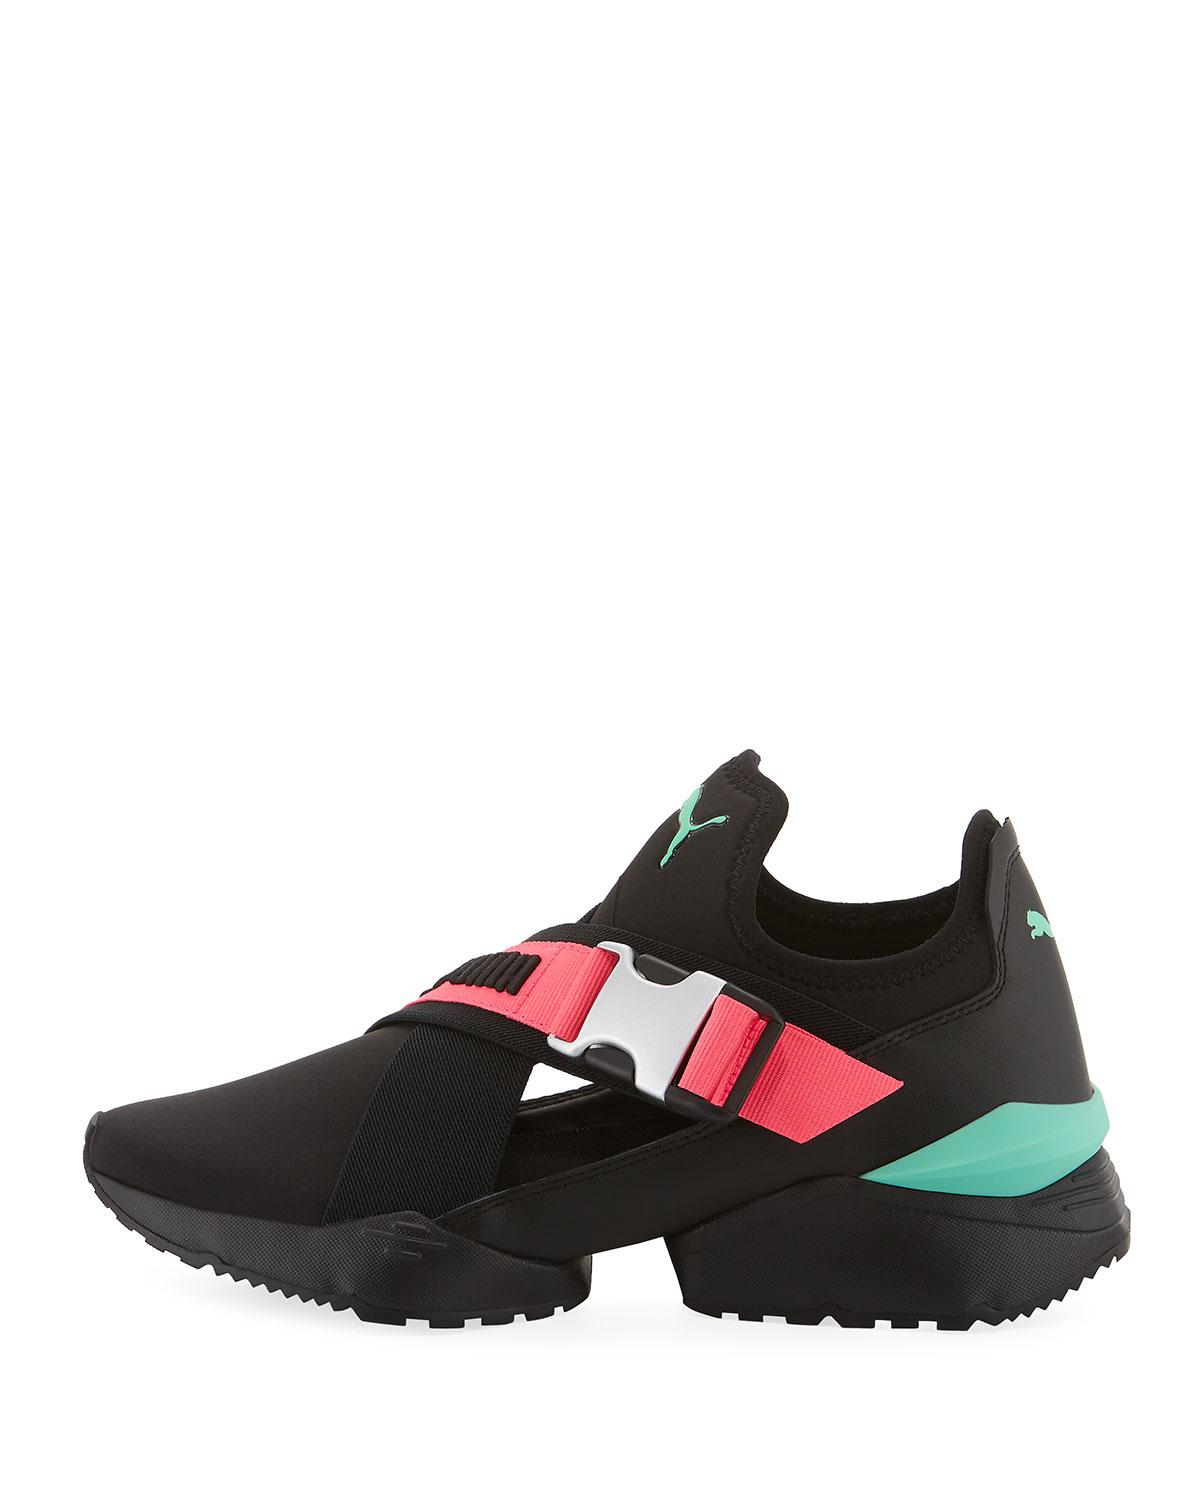 528481c6fadc Lyst - PUMA Muse Eos Cutout Neoprene Sneakers in Black